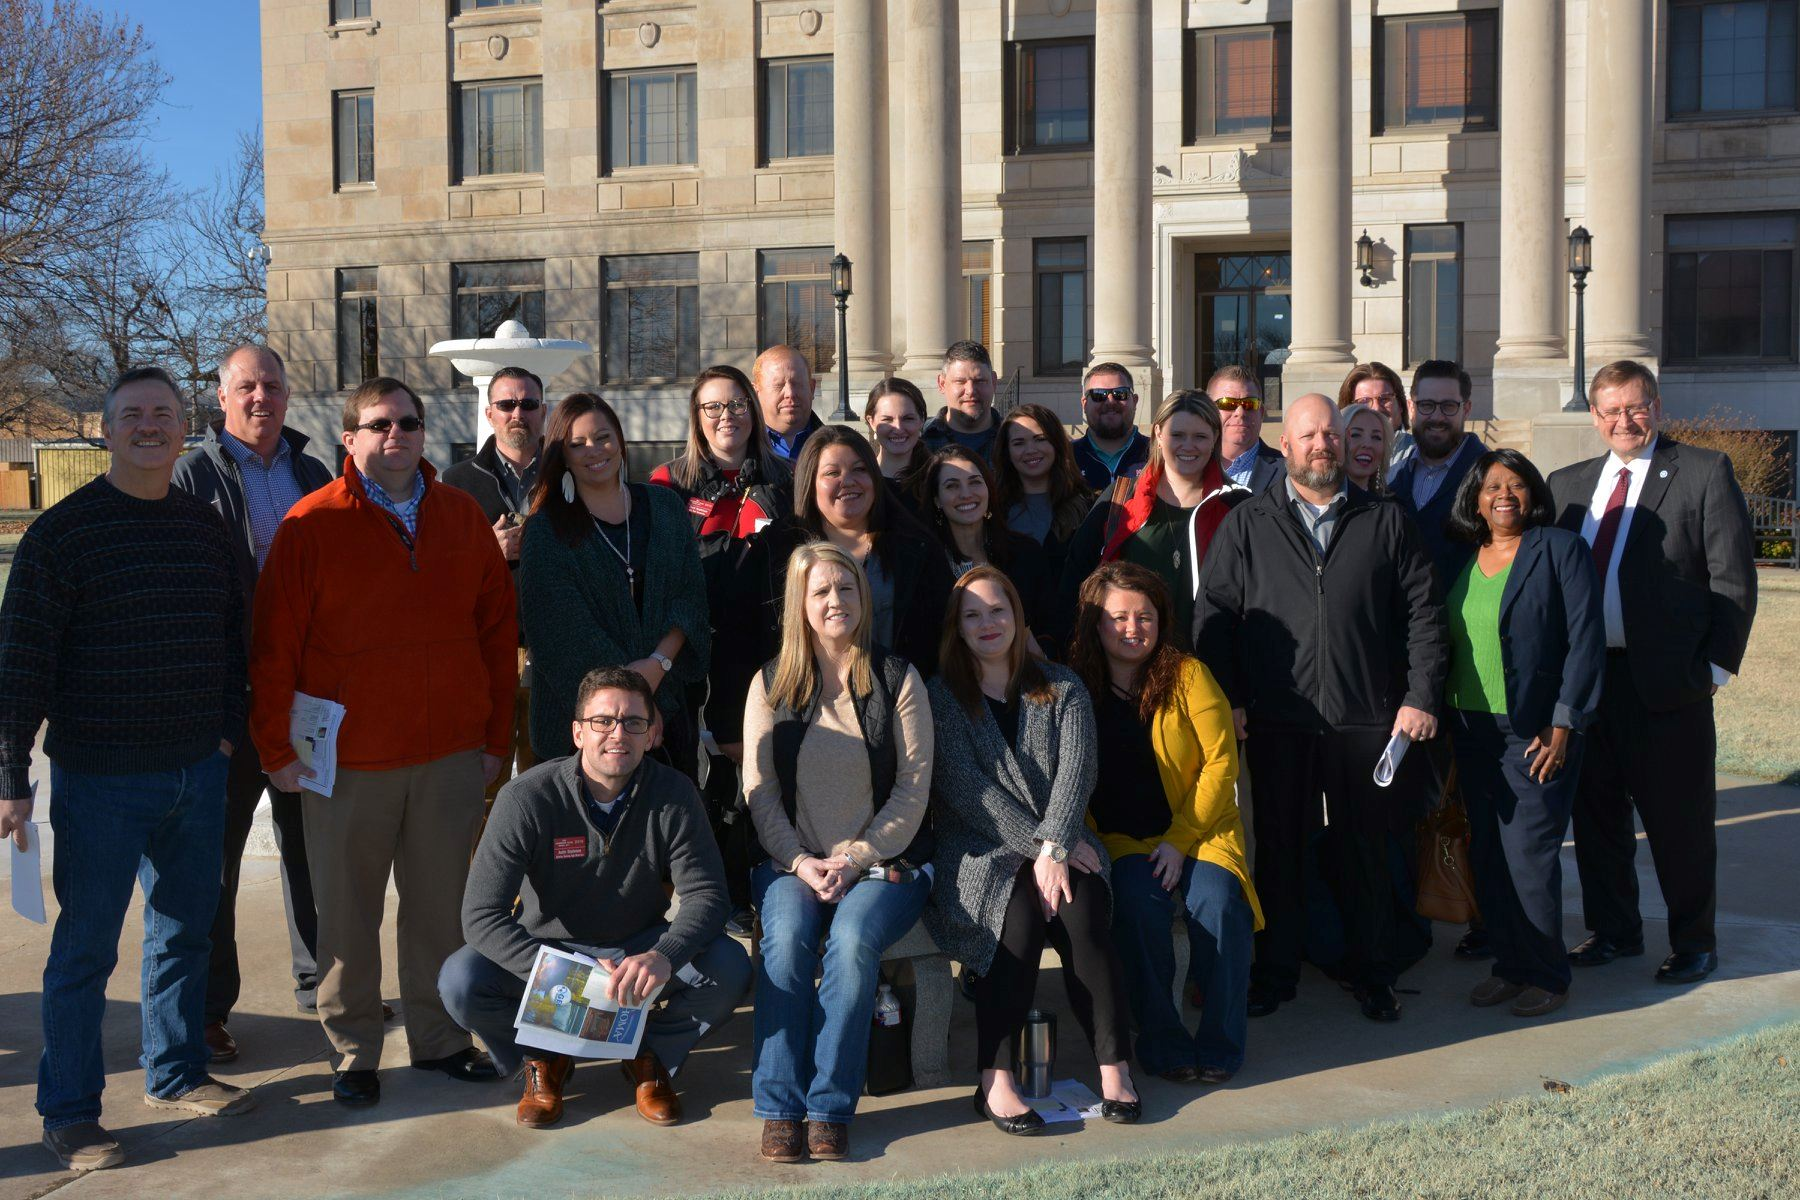 Ponca City Leadership Poses in Front of Kay County Courthouse